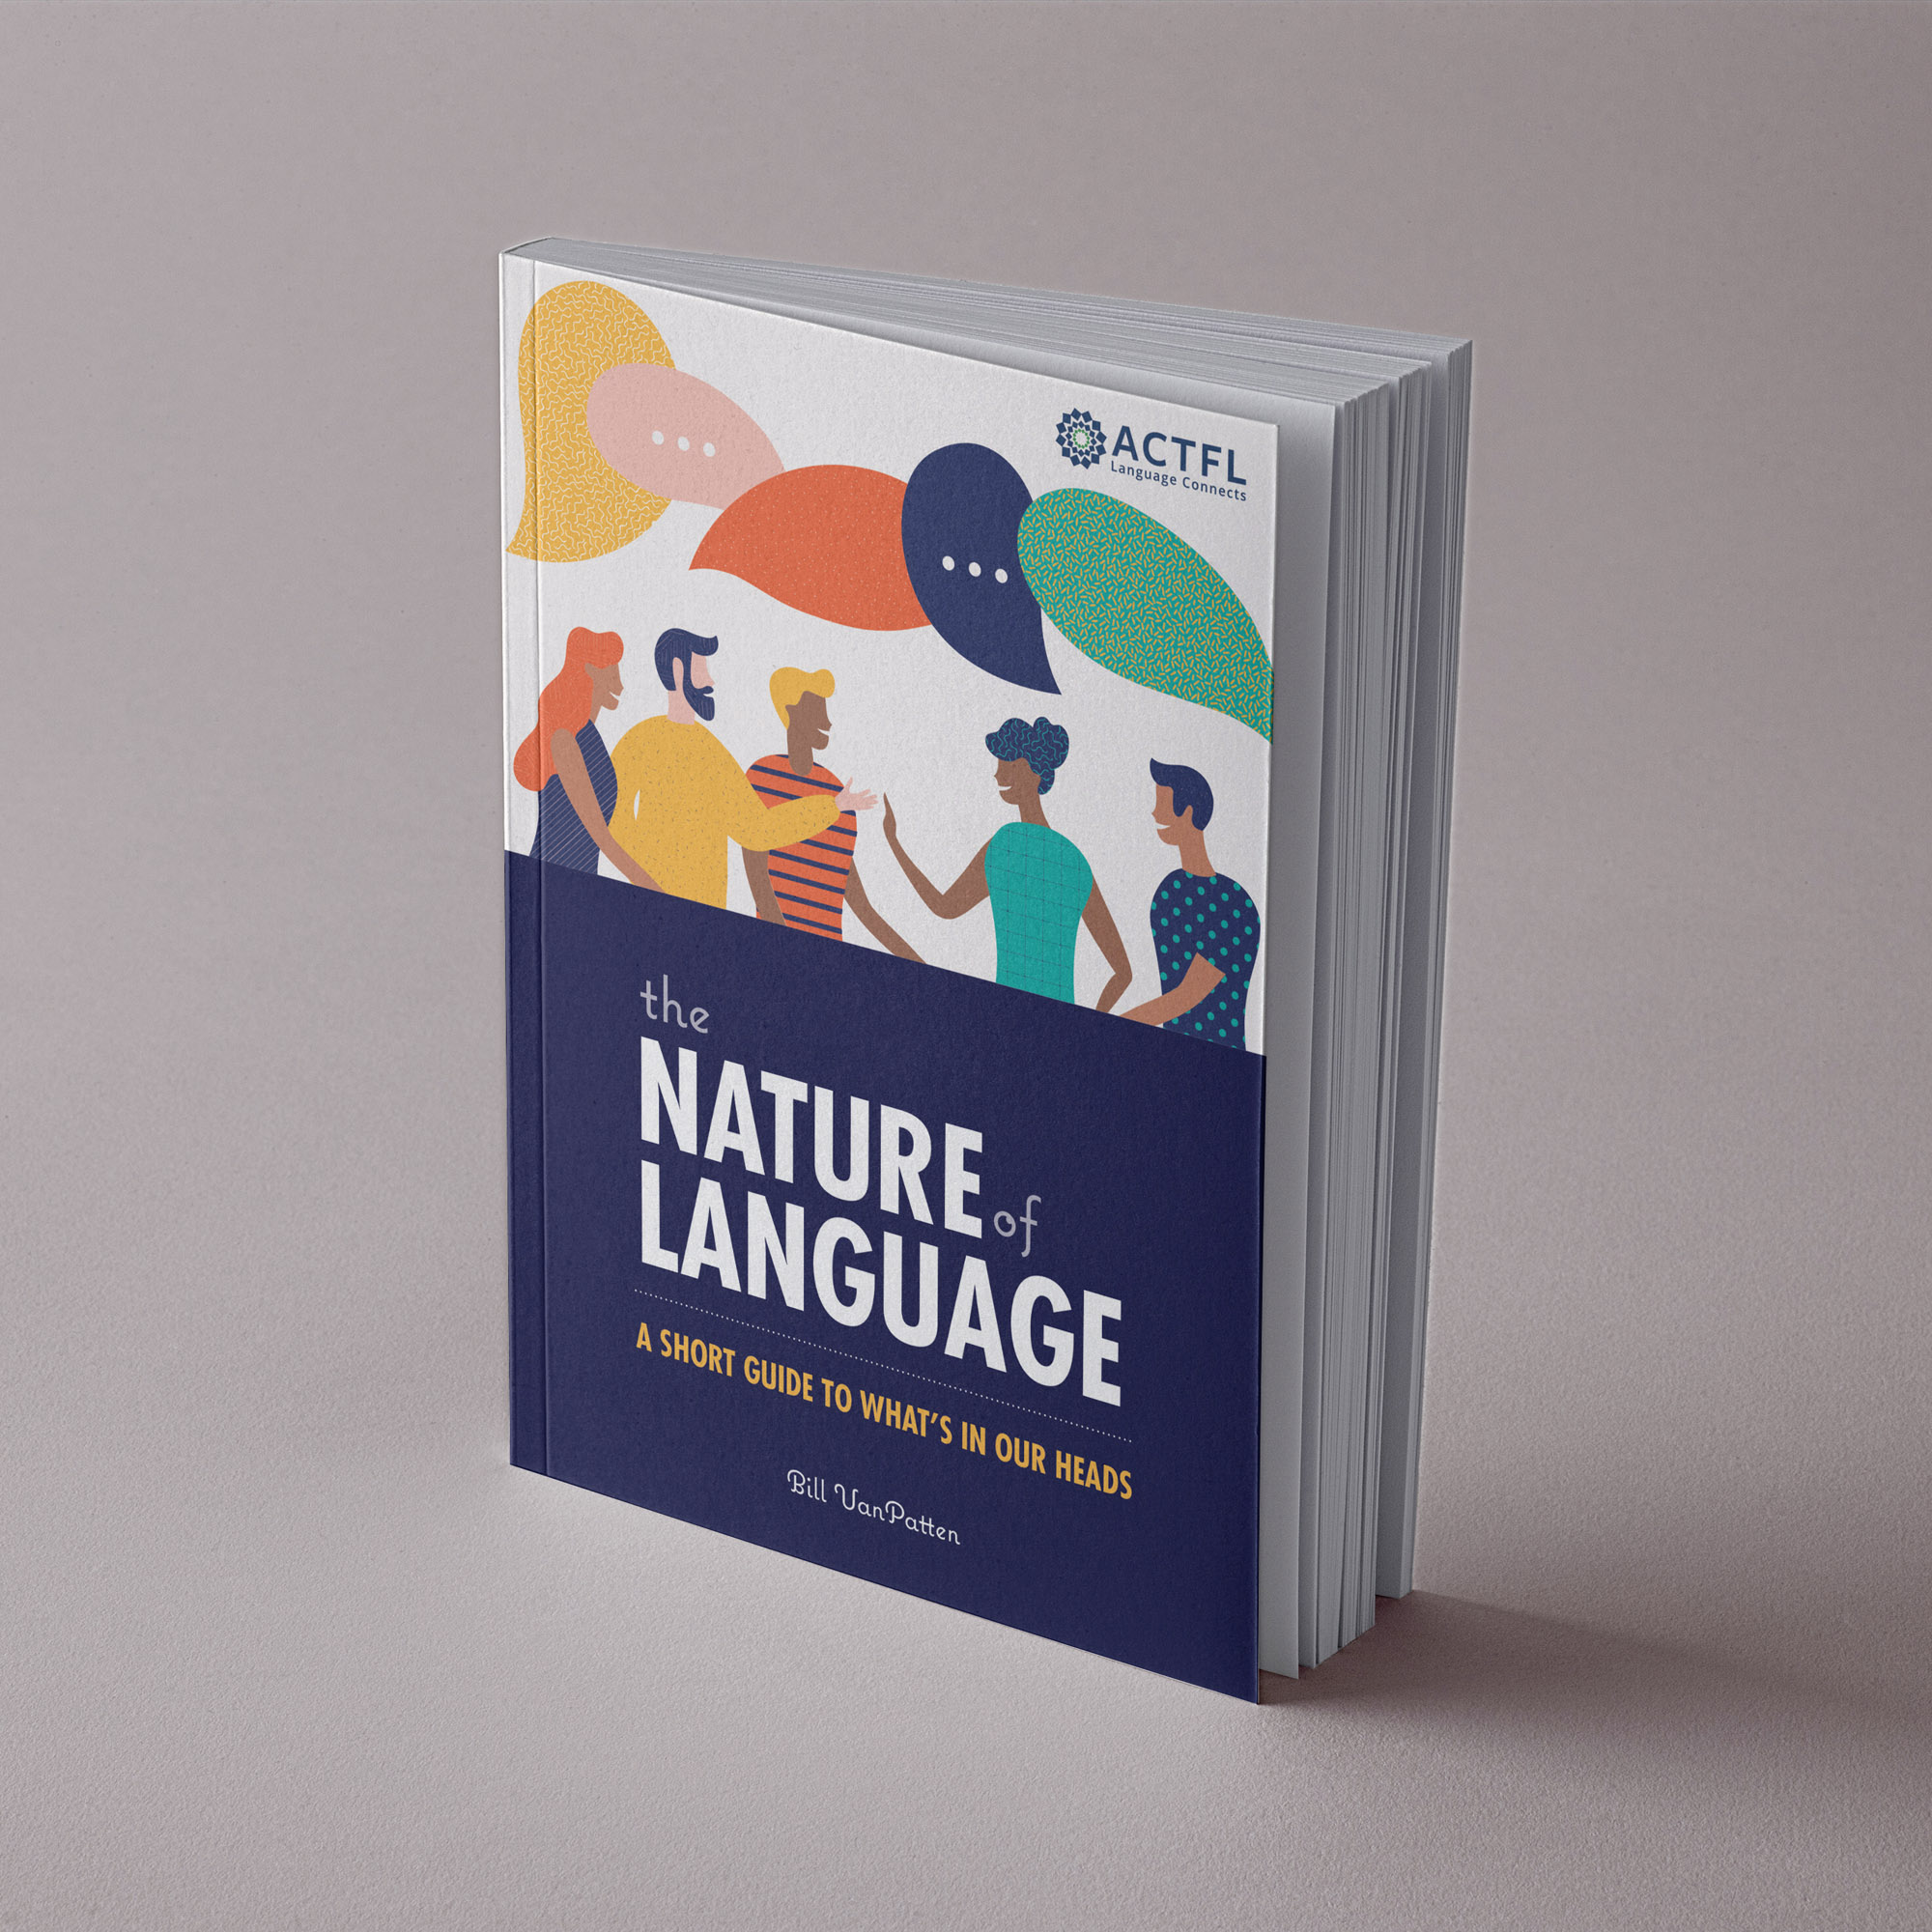 ACTFL The Nature of Language book cover